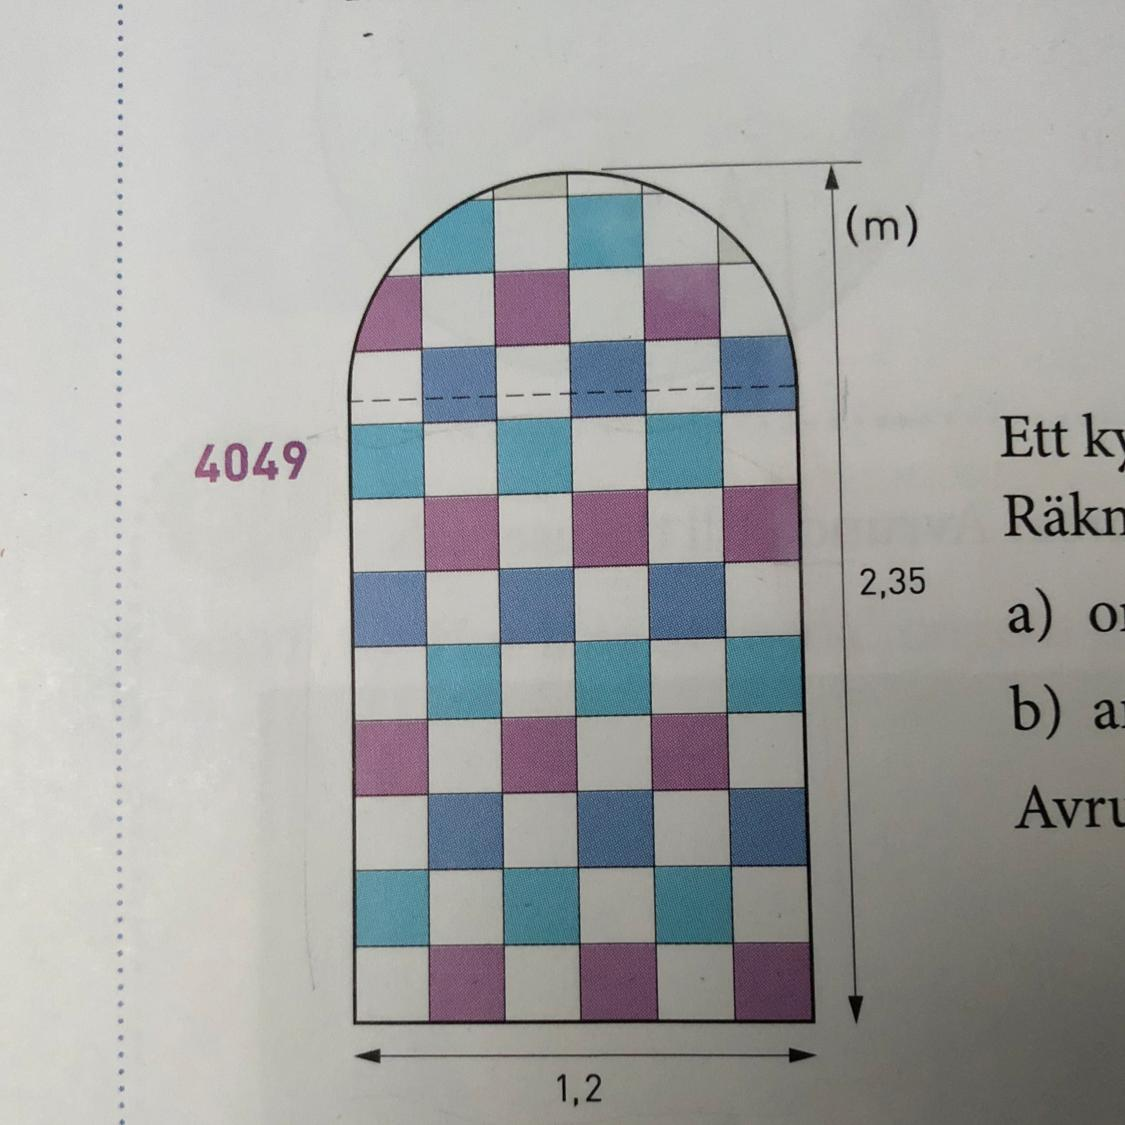 How To Calculate The Area And Perimeter Of This Figure